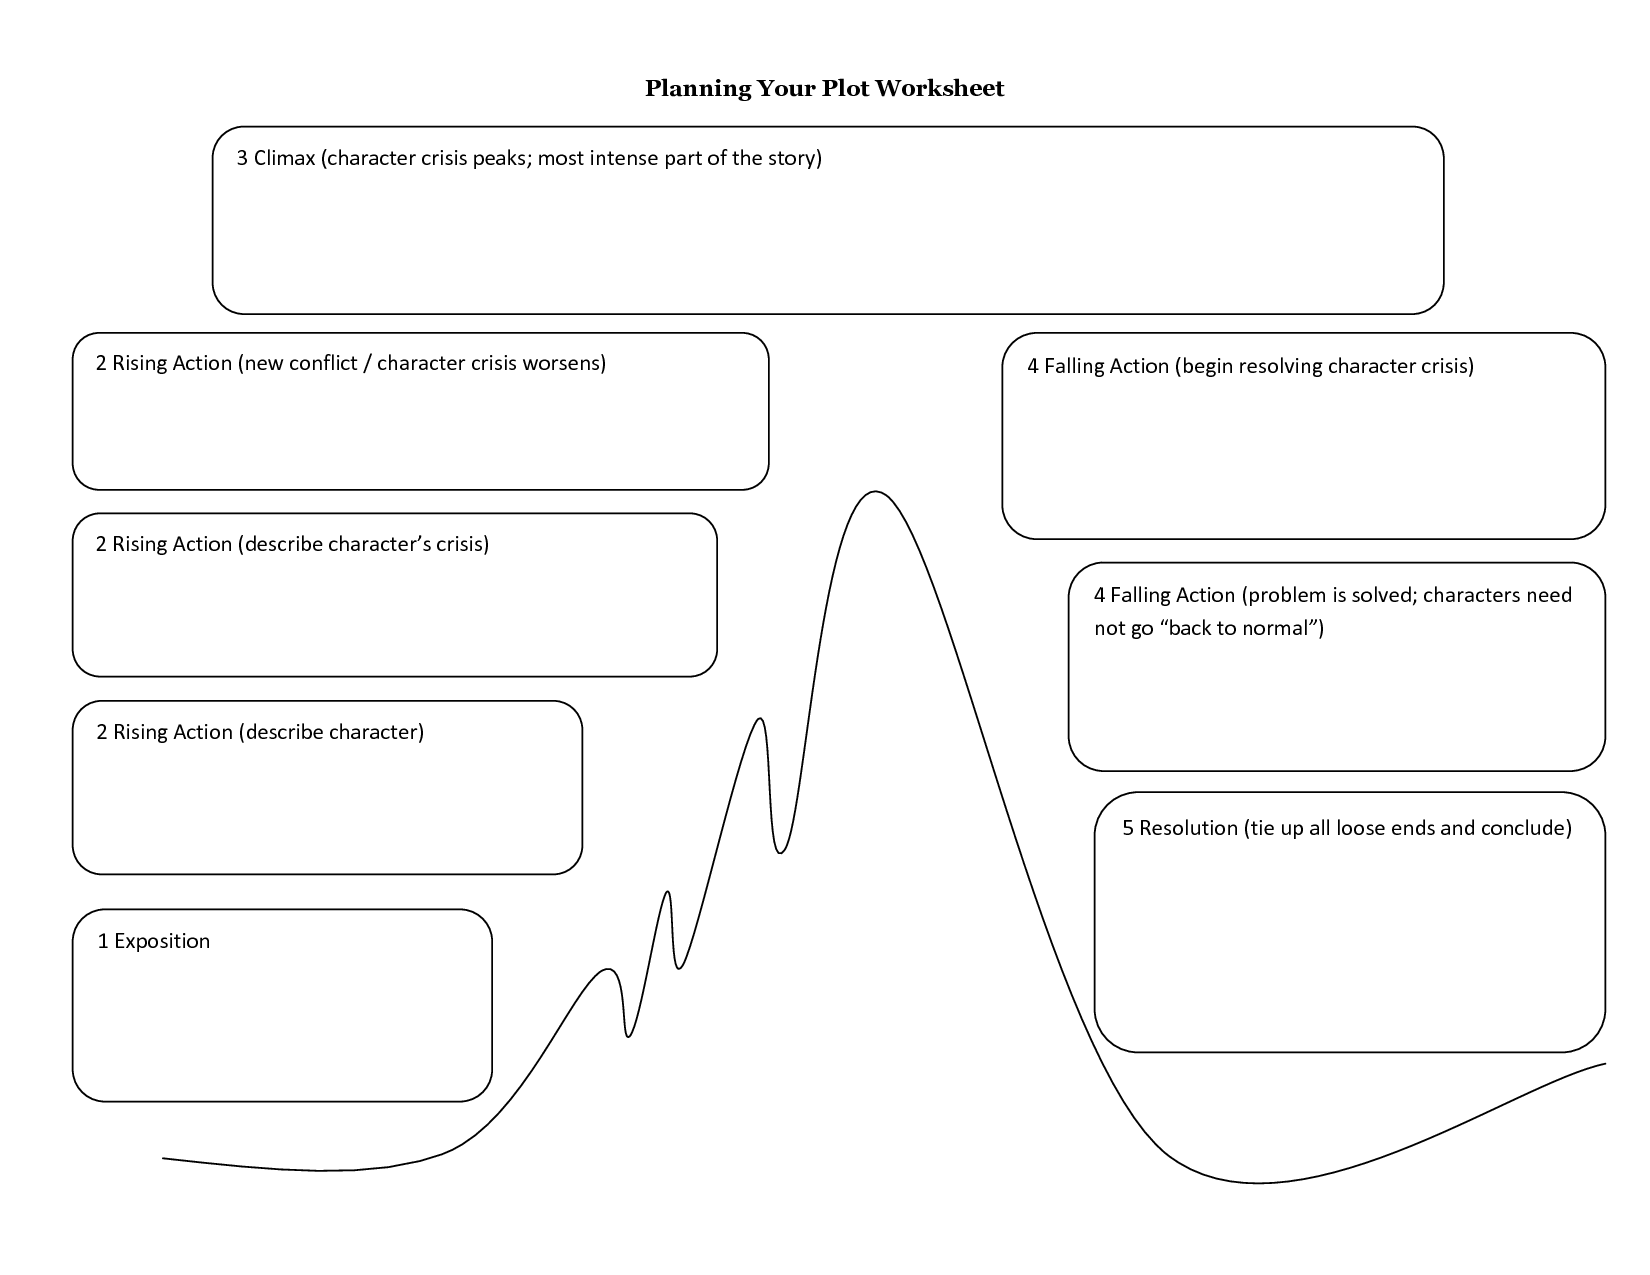 Worksheets Identifying Story Elements Worksheet parts of a story worksheet planning your plot 1 exposition 2 rising action school pinterest worksheets and school